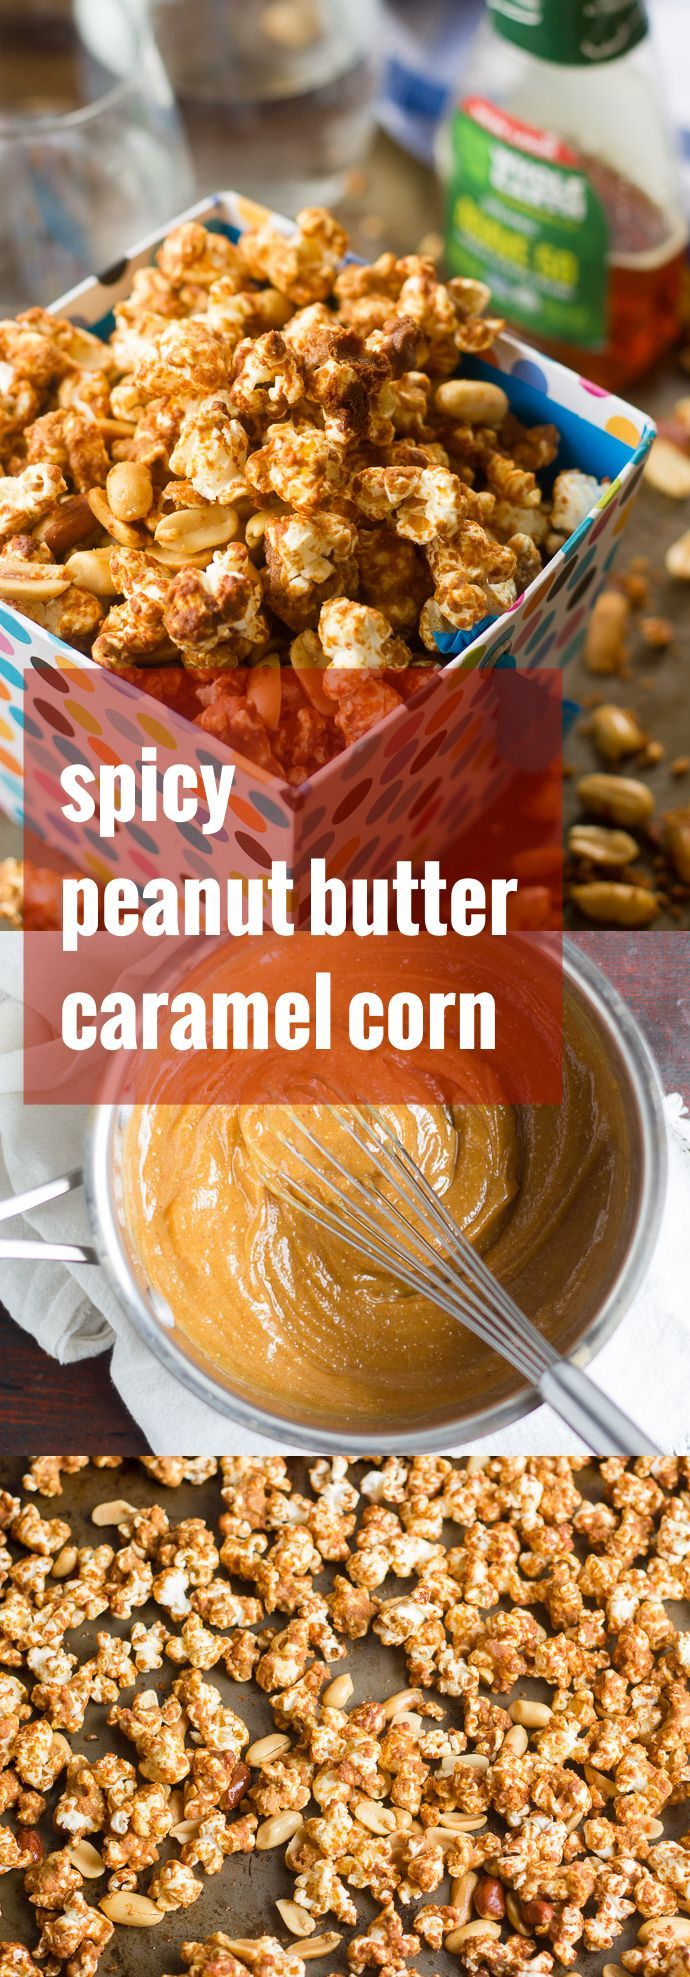 This addictive caramel corn is drenched in a peanut butter coating that's rich and nutty, perfectly sweet, and just a tad spicy! #ad